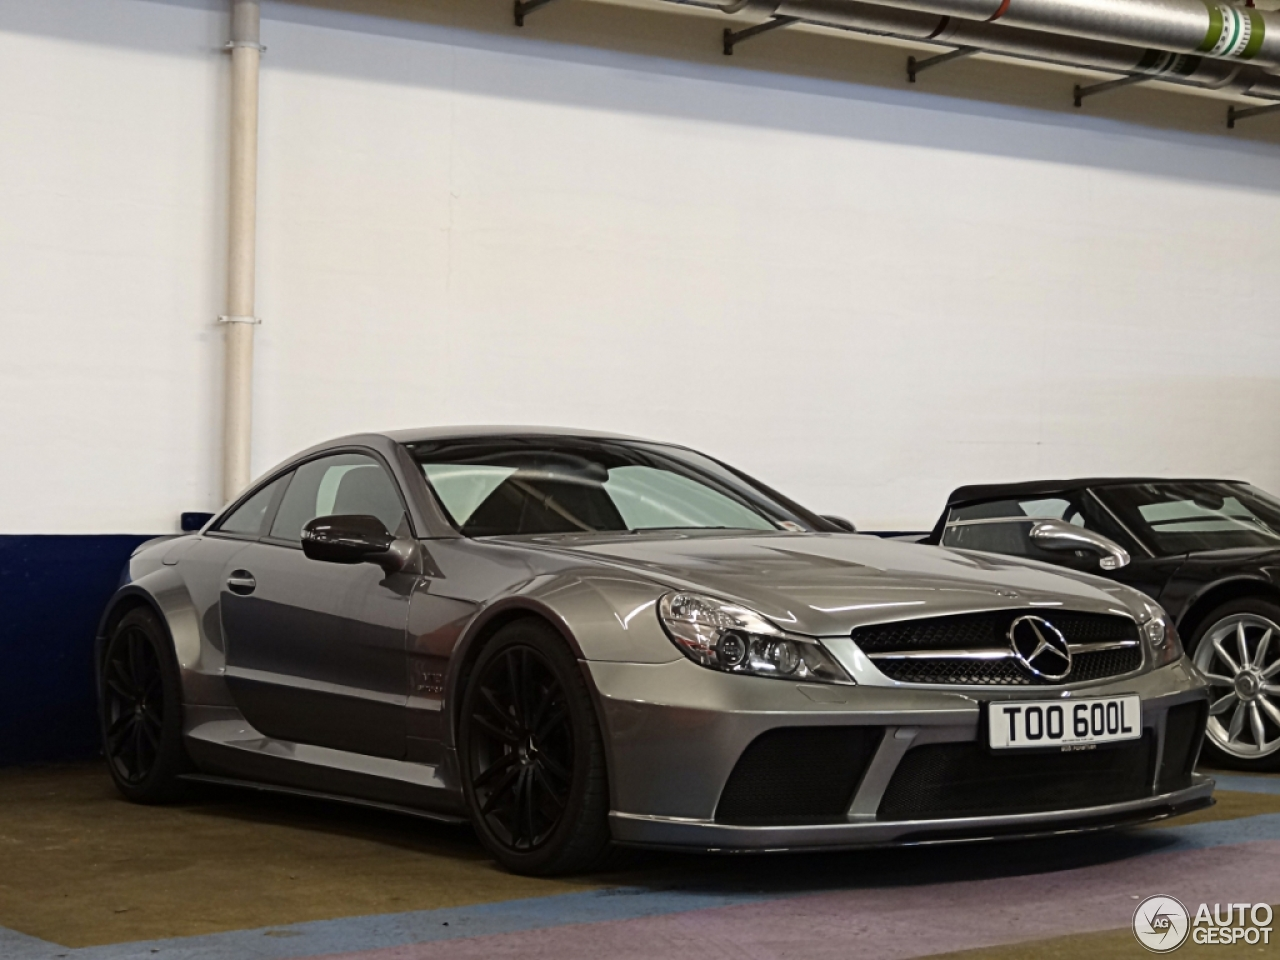 Mercedes benz sl 65 amg black series 22 july 2013 for Mercedes benz sl65 amg black series for sale